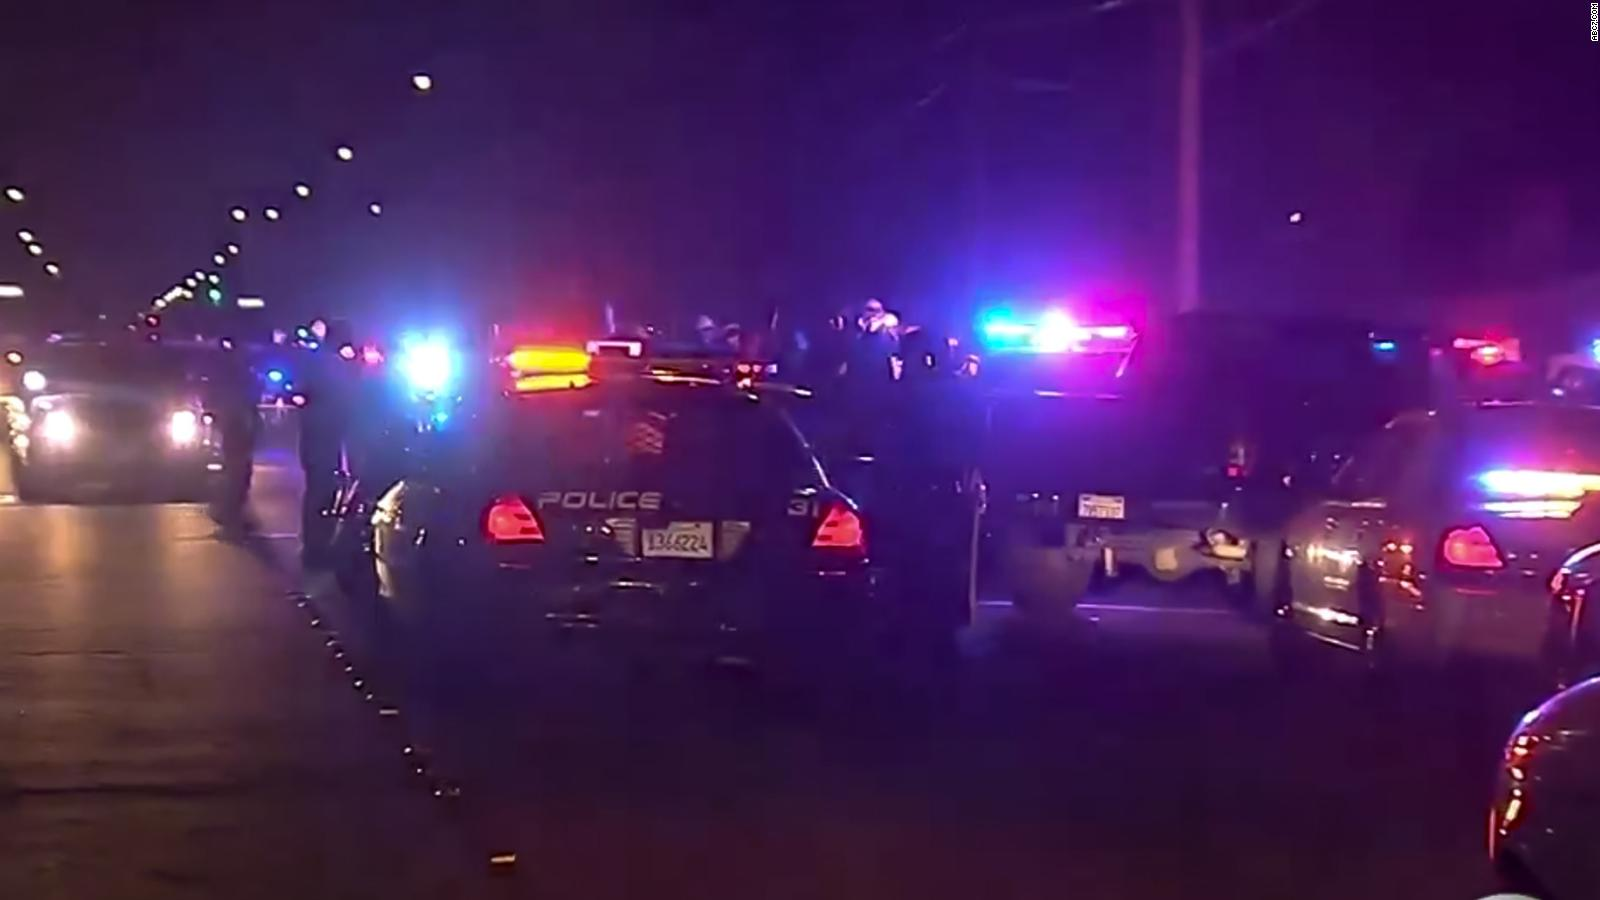 California officer dead as standoff continues